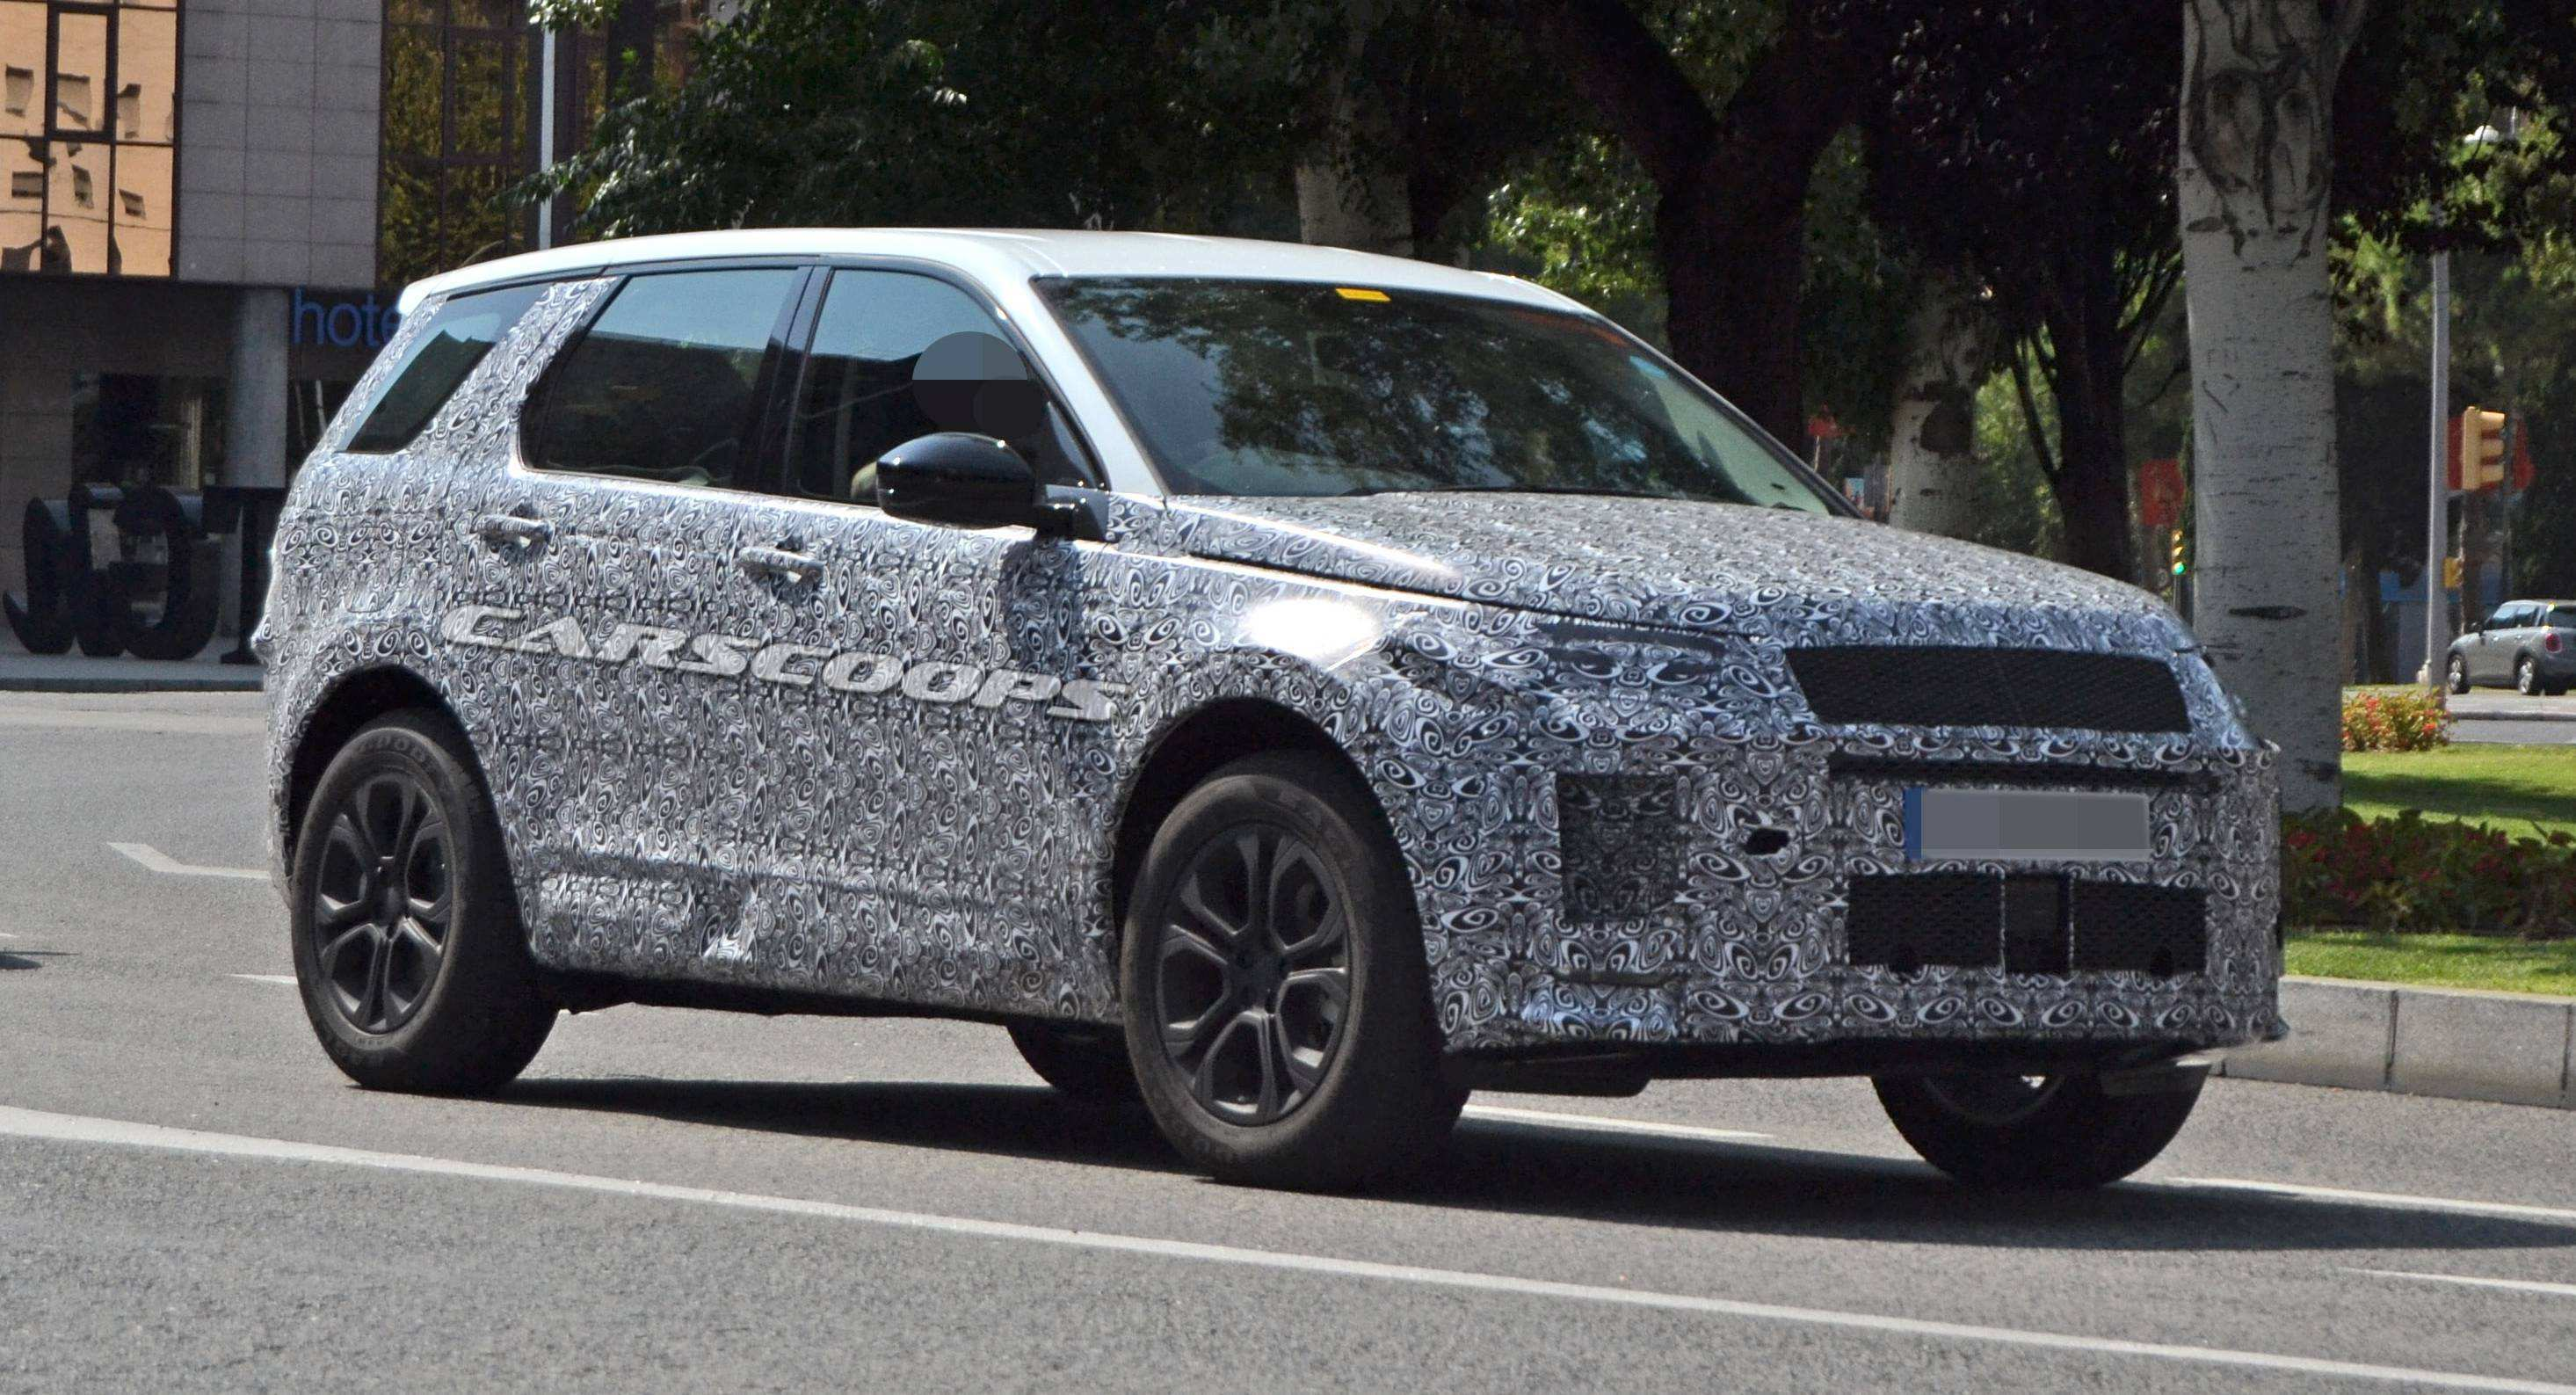 41 New 2020 Land Rover Discovery Pricing